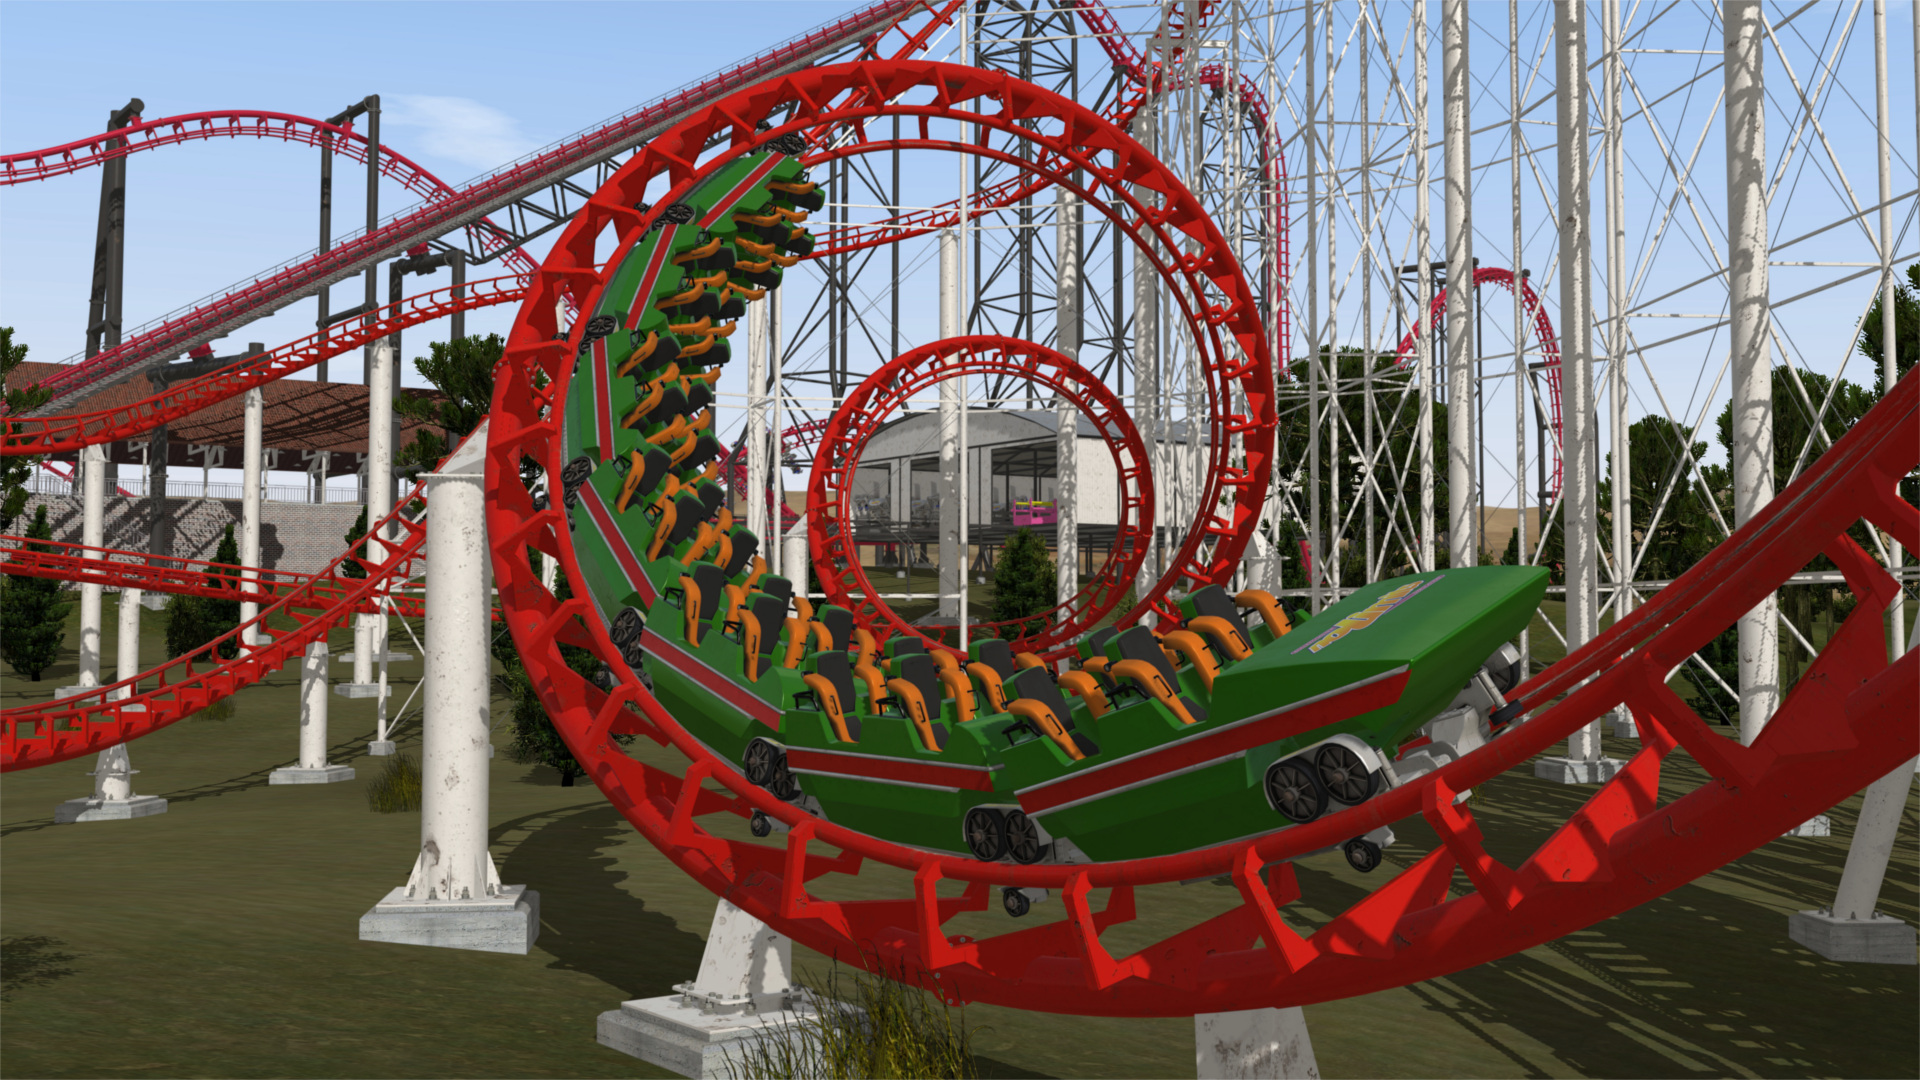 Download Nolimits 2 Roller Coaster Simulation Full Pc Game